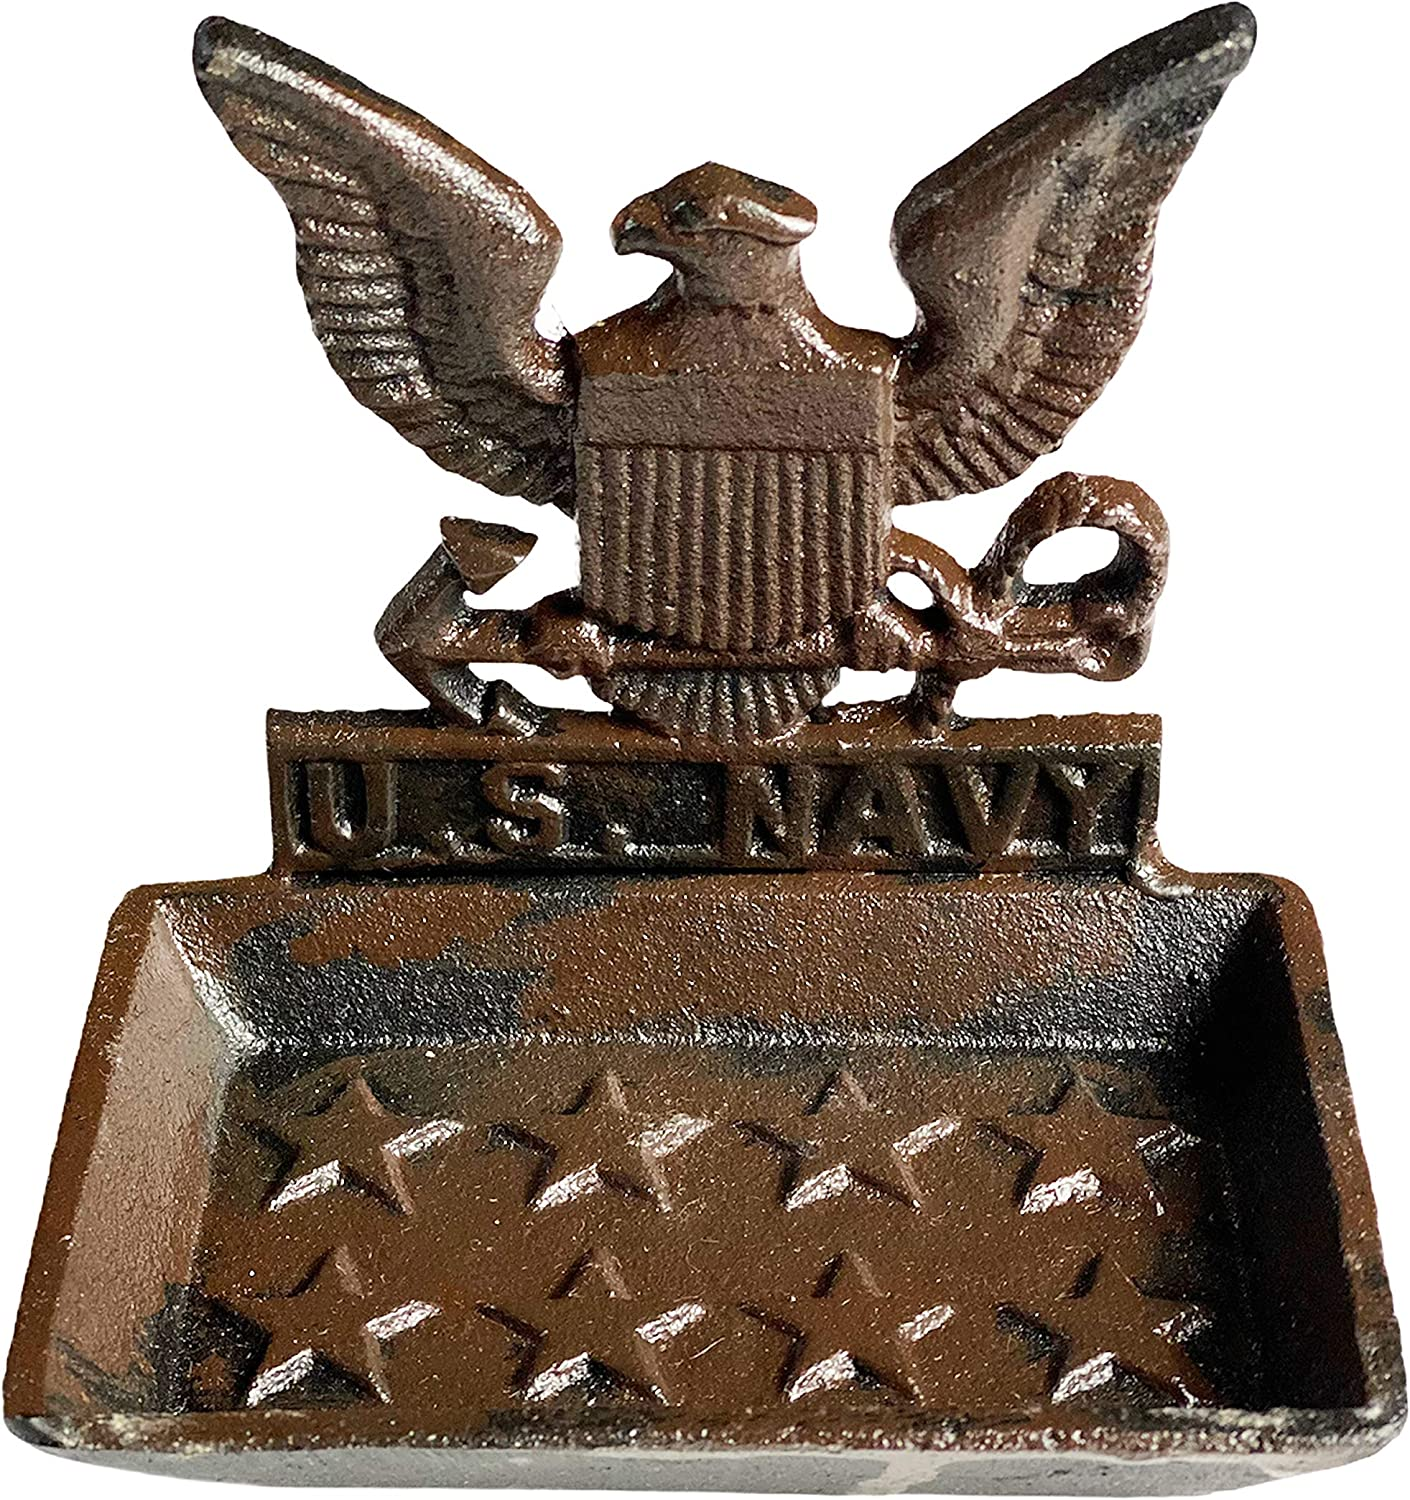 Urbalabs Heavy Duty Cast Iron Military Hand Bar Soap Holder, Ring Dish, Jewelry Holder Decorative Tray Home Decor Accents and Vanity Decor USMC, Army, Marines, Navy and Air Force (Navy)